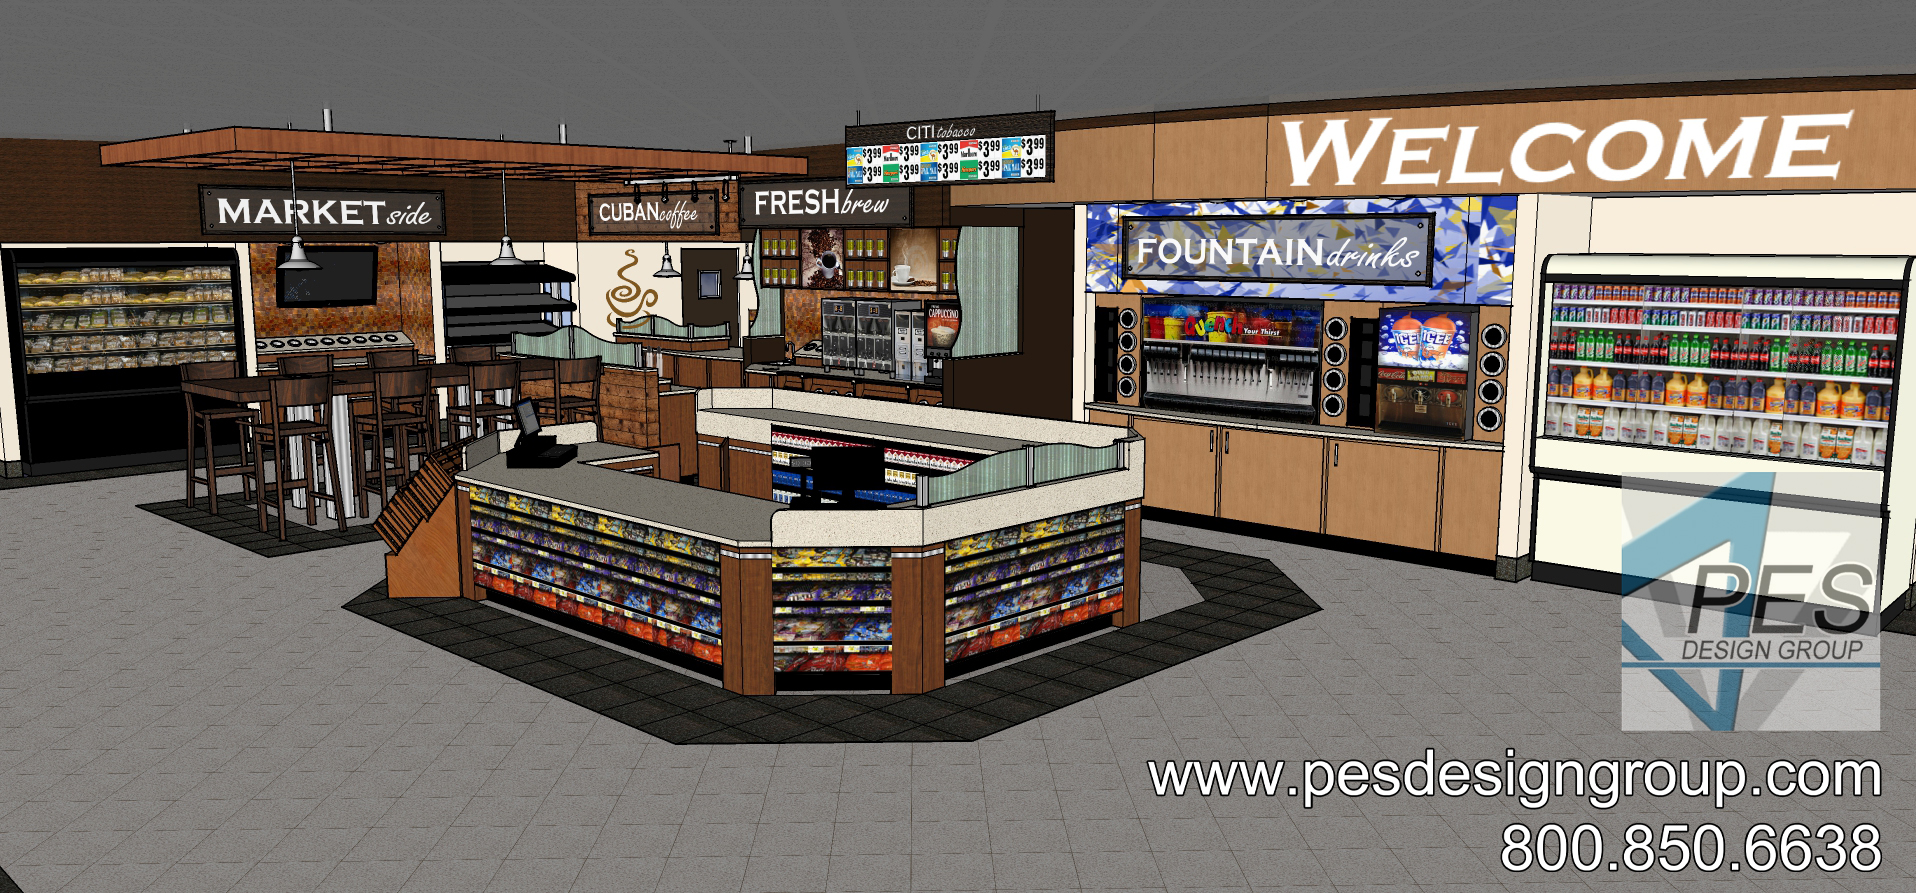 A concept rendering of the remodeled c-store at a Shell gas station and c-store in Coconut Creek, Florida.